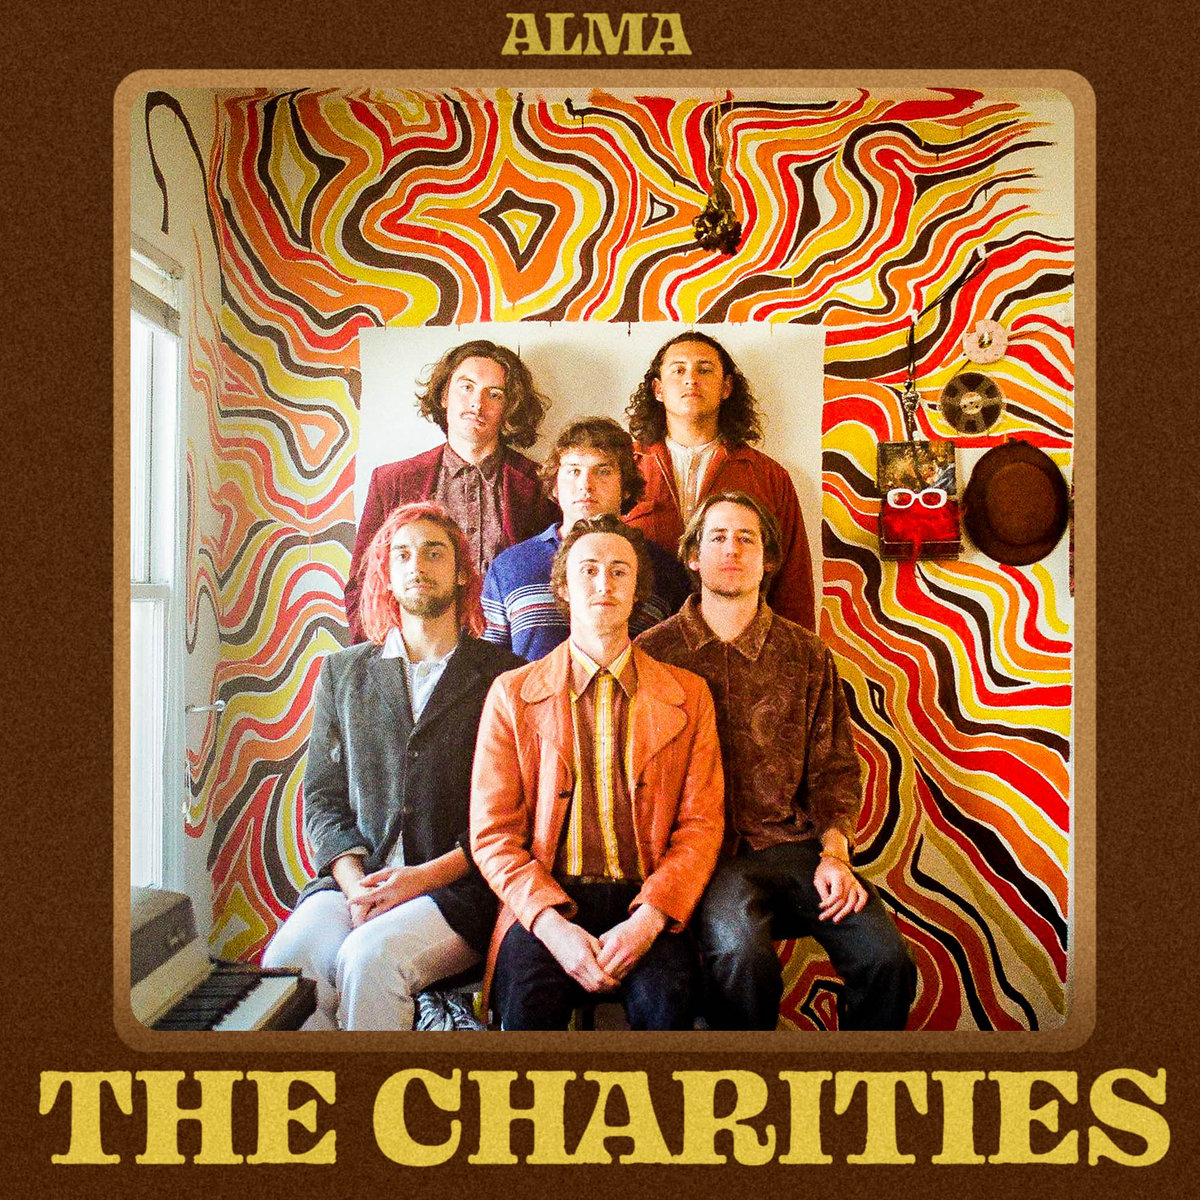 Album cover art for Alma by The Charities